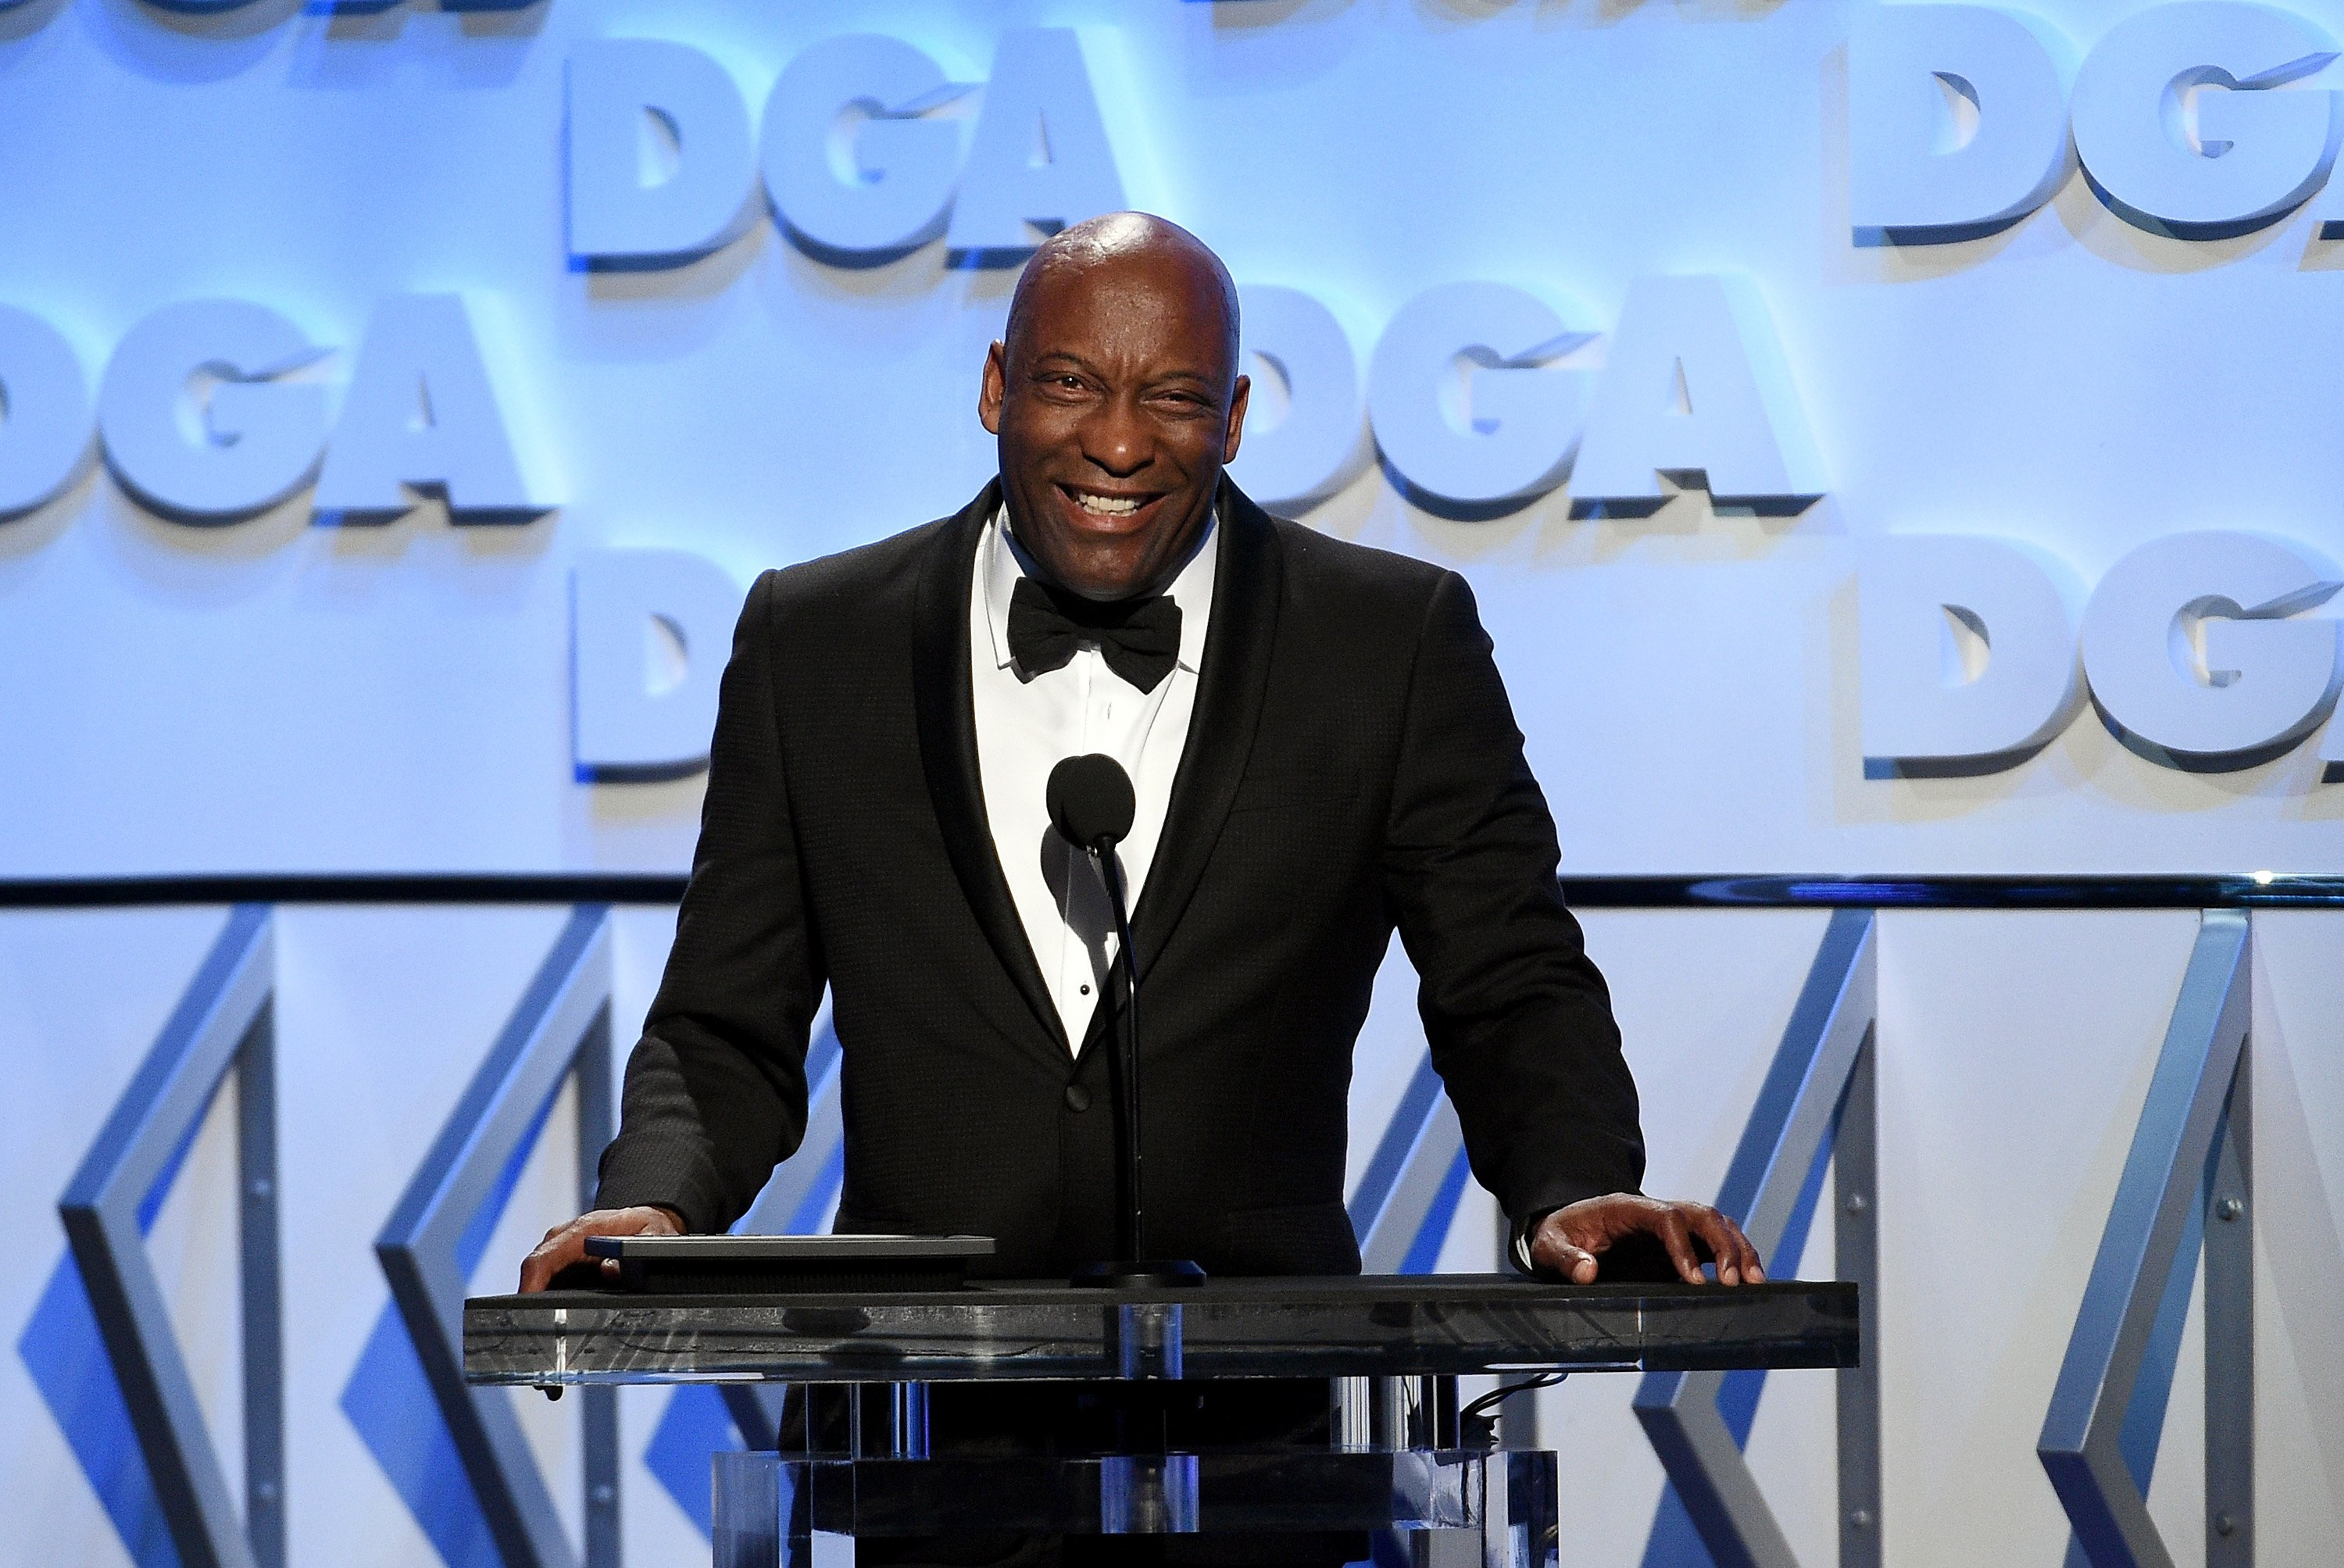 John Singleton speaking onstage during the 70th Annual Directors Guild Of America Awards in California on Feb. 3, 2018. | Photo: Getty Images